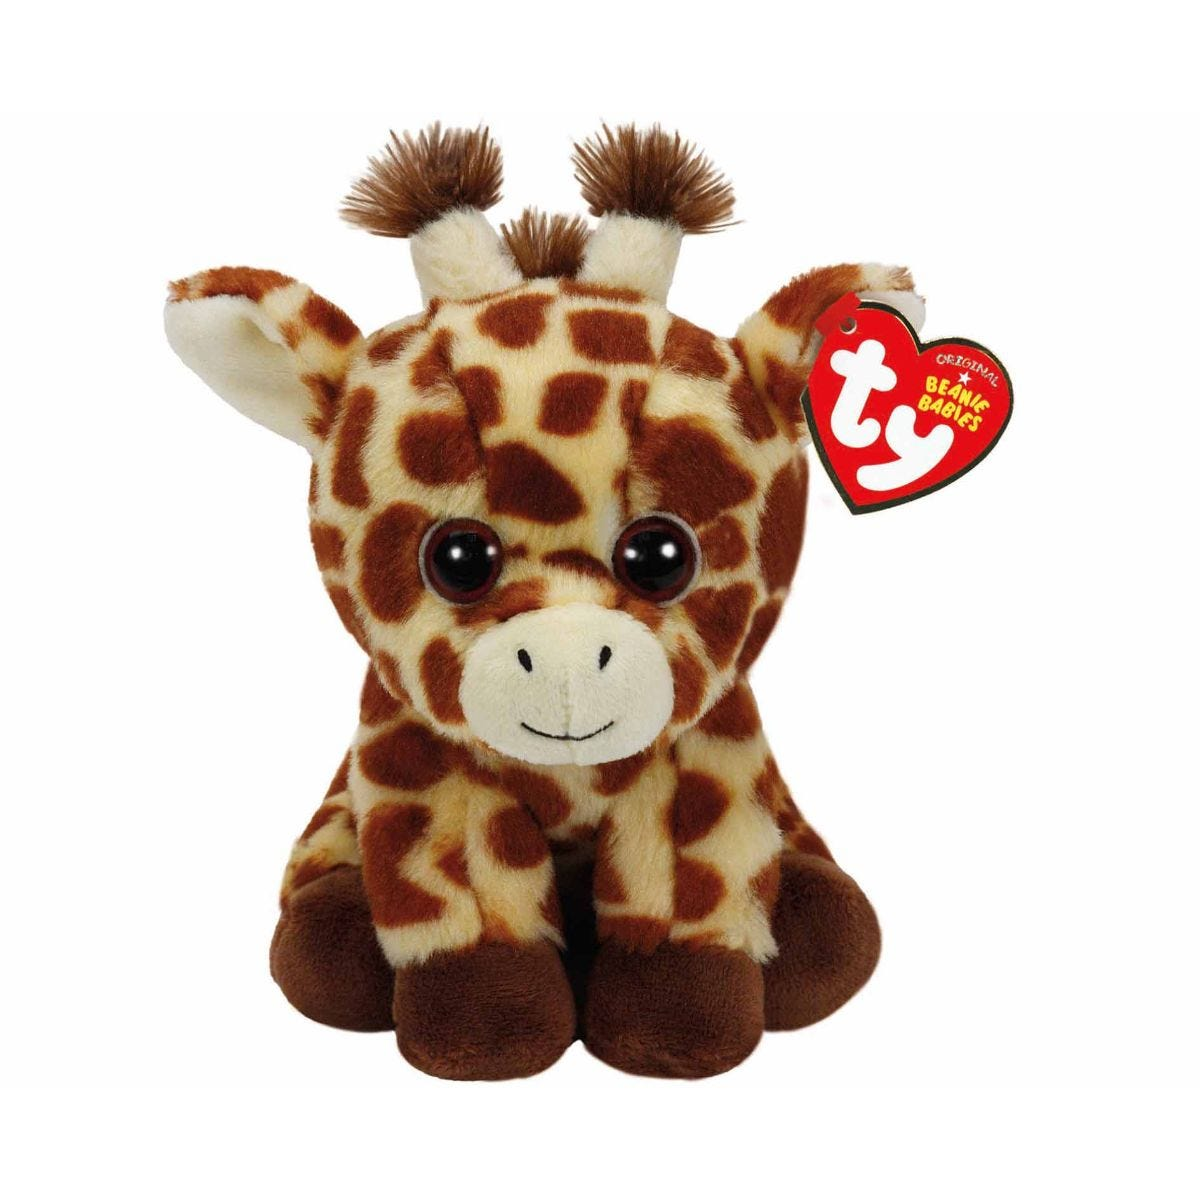 Image of Ty Peaches Giraffe Beanie Baby Cuddly Toy